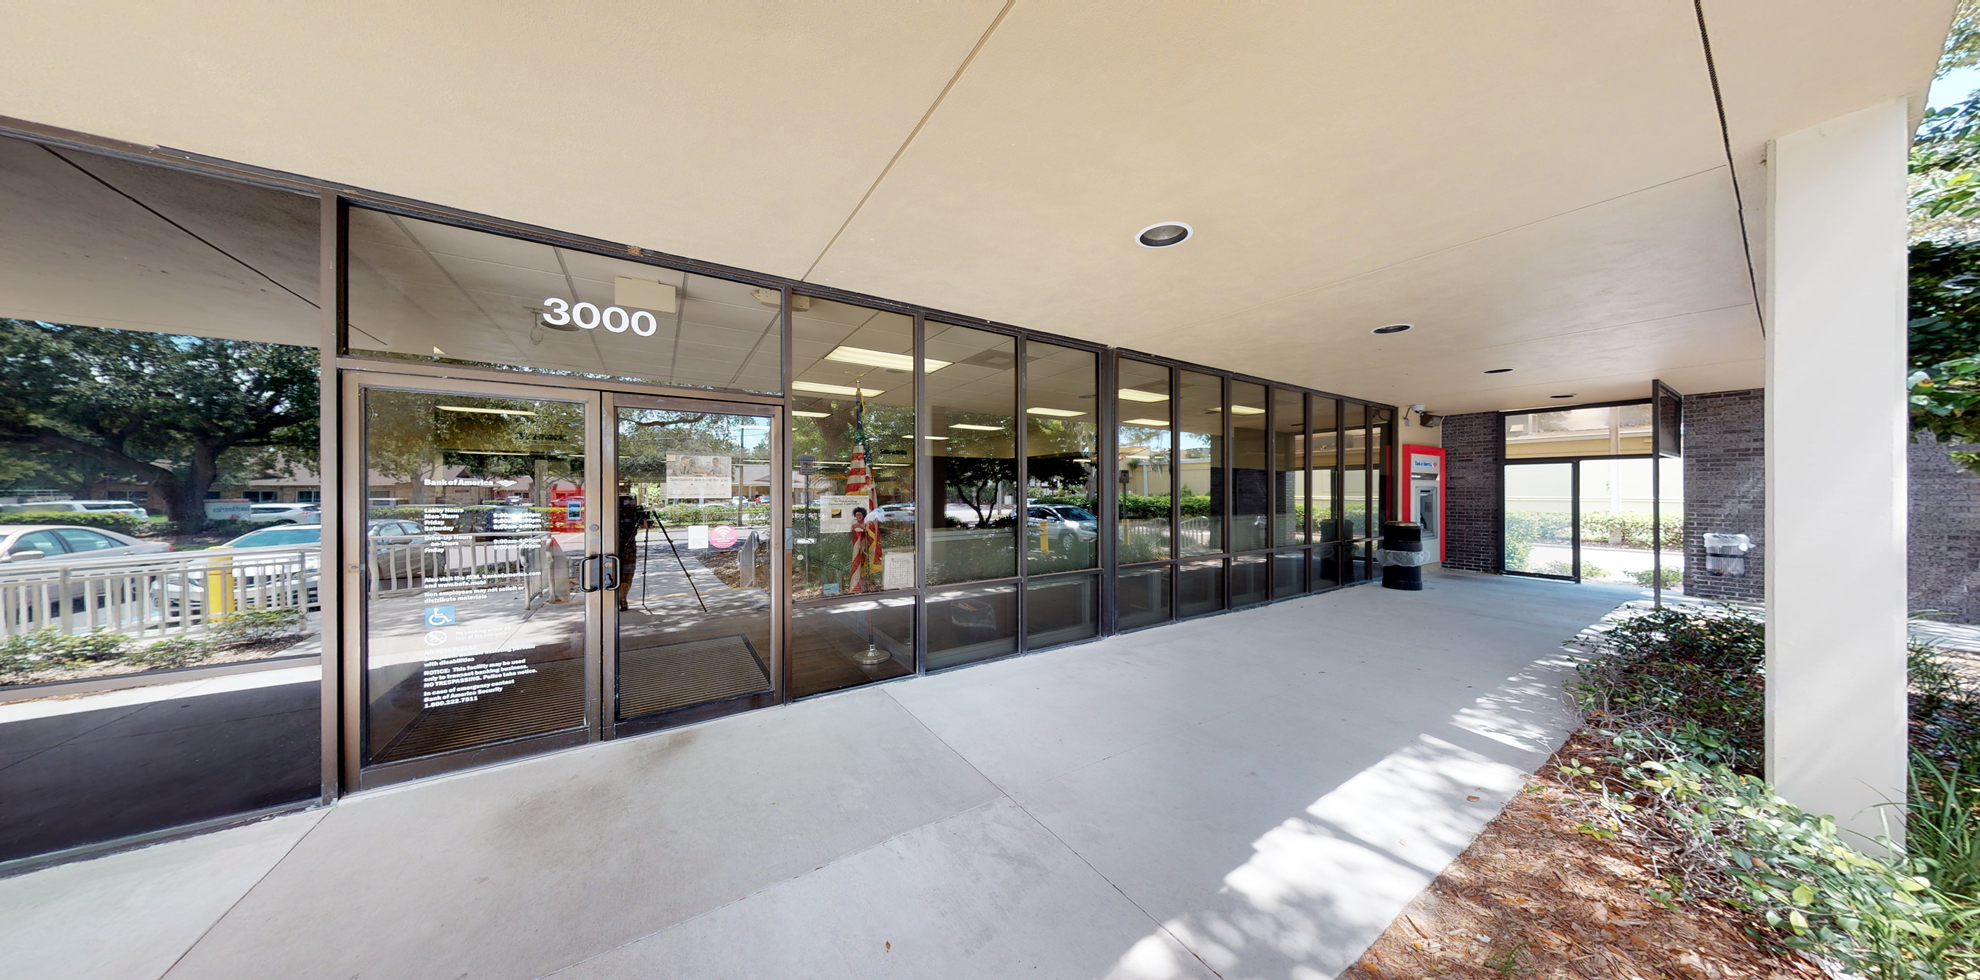 Bank of America financial center with drive-thru ATM   3000 Enterprise Rd E, Clearwater, FL 33759